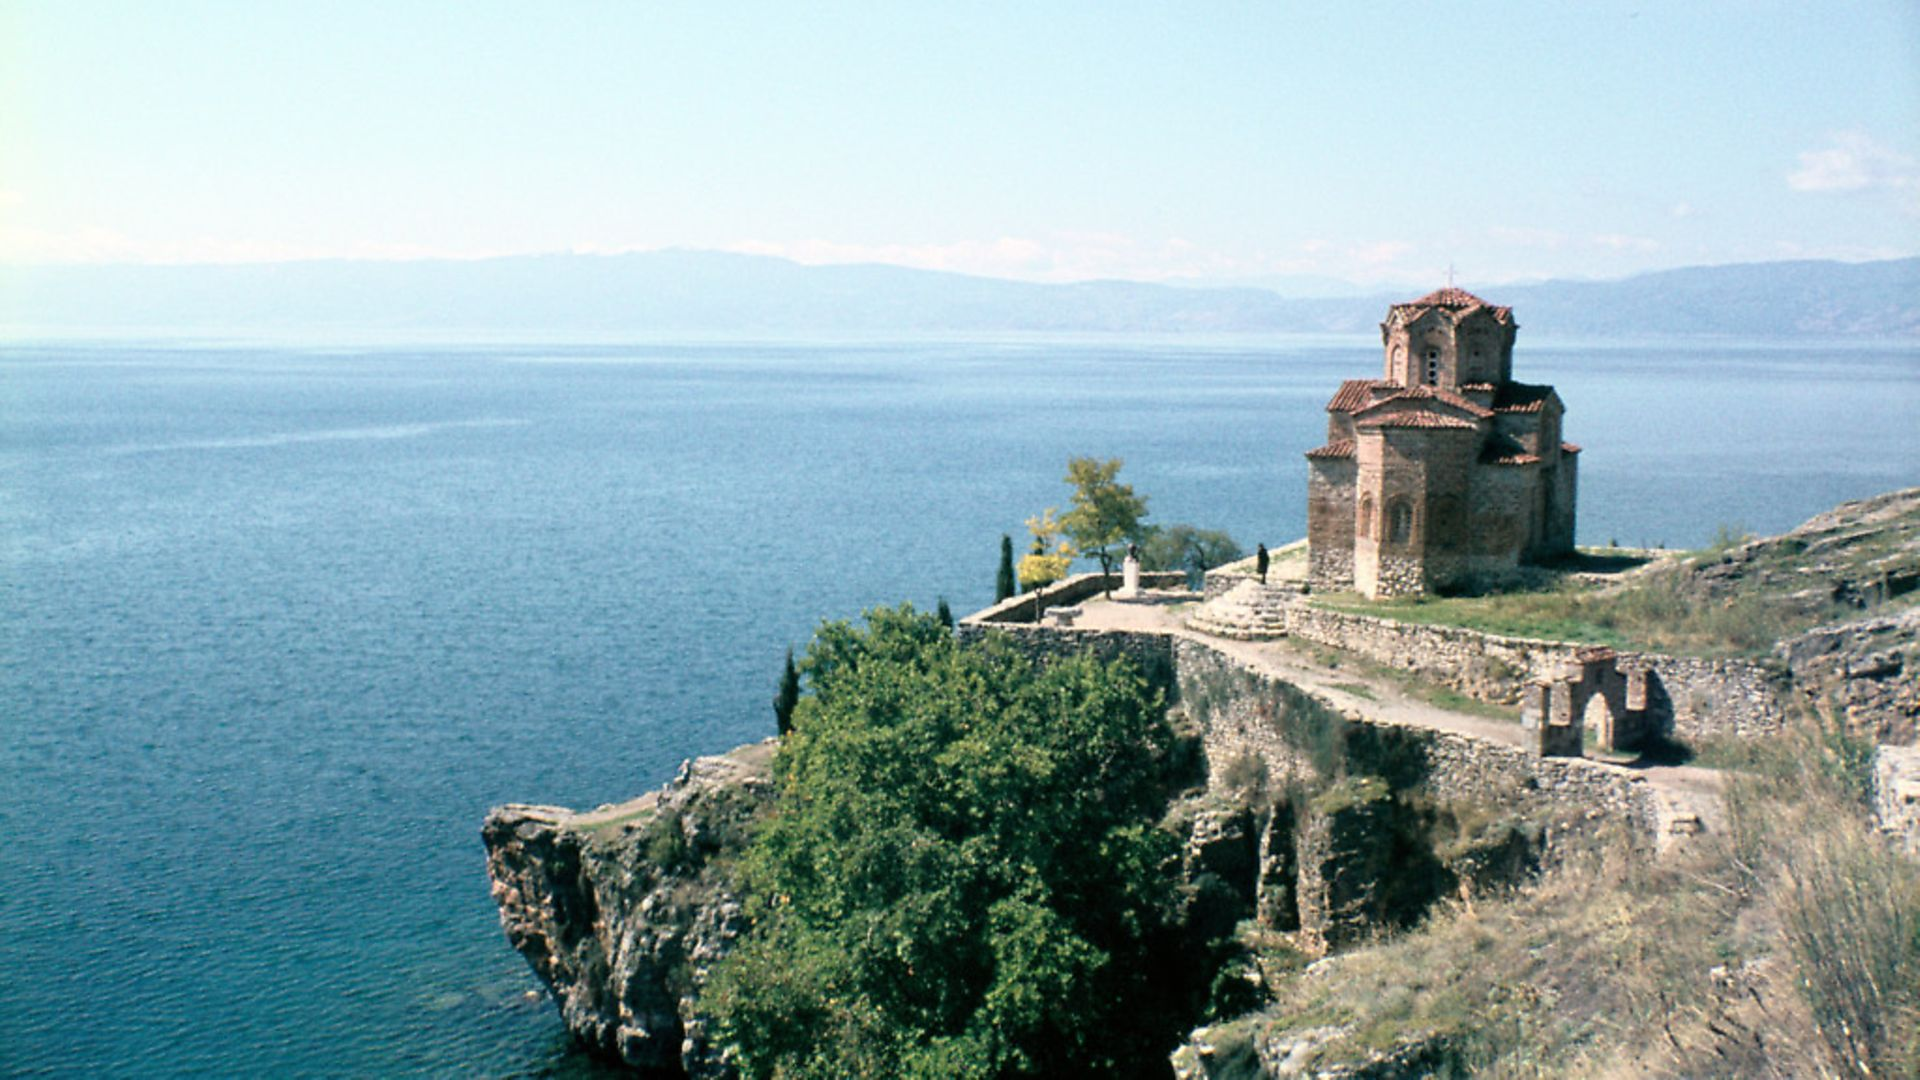 Church of St John the Divine, Kaneo, Lake Ohrid, Macedonia. Built on a bluff overlooking the lake, this church was built in the 13th century. Picture: Vivienne Sharp/Heritage Images/Getty Images - Credit: Heritage Images/Getty Images